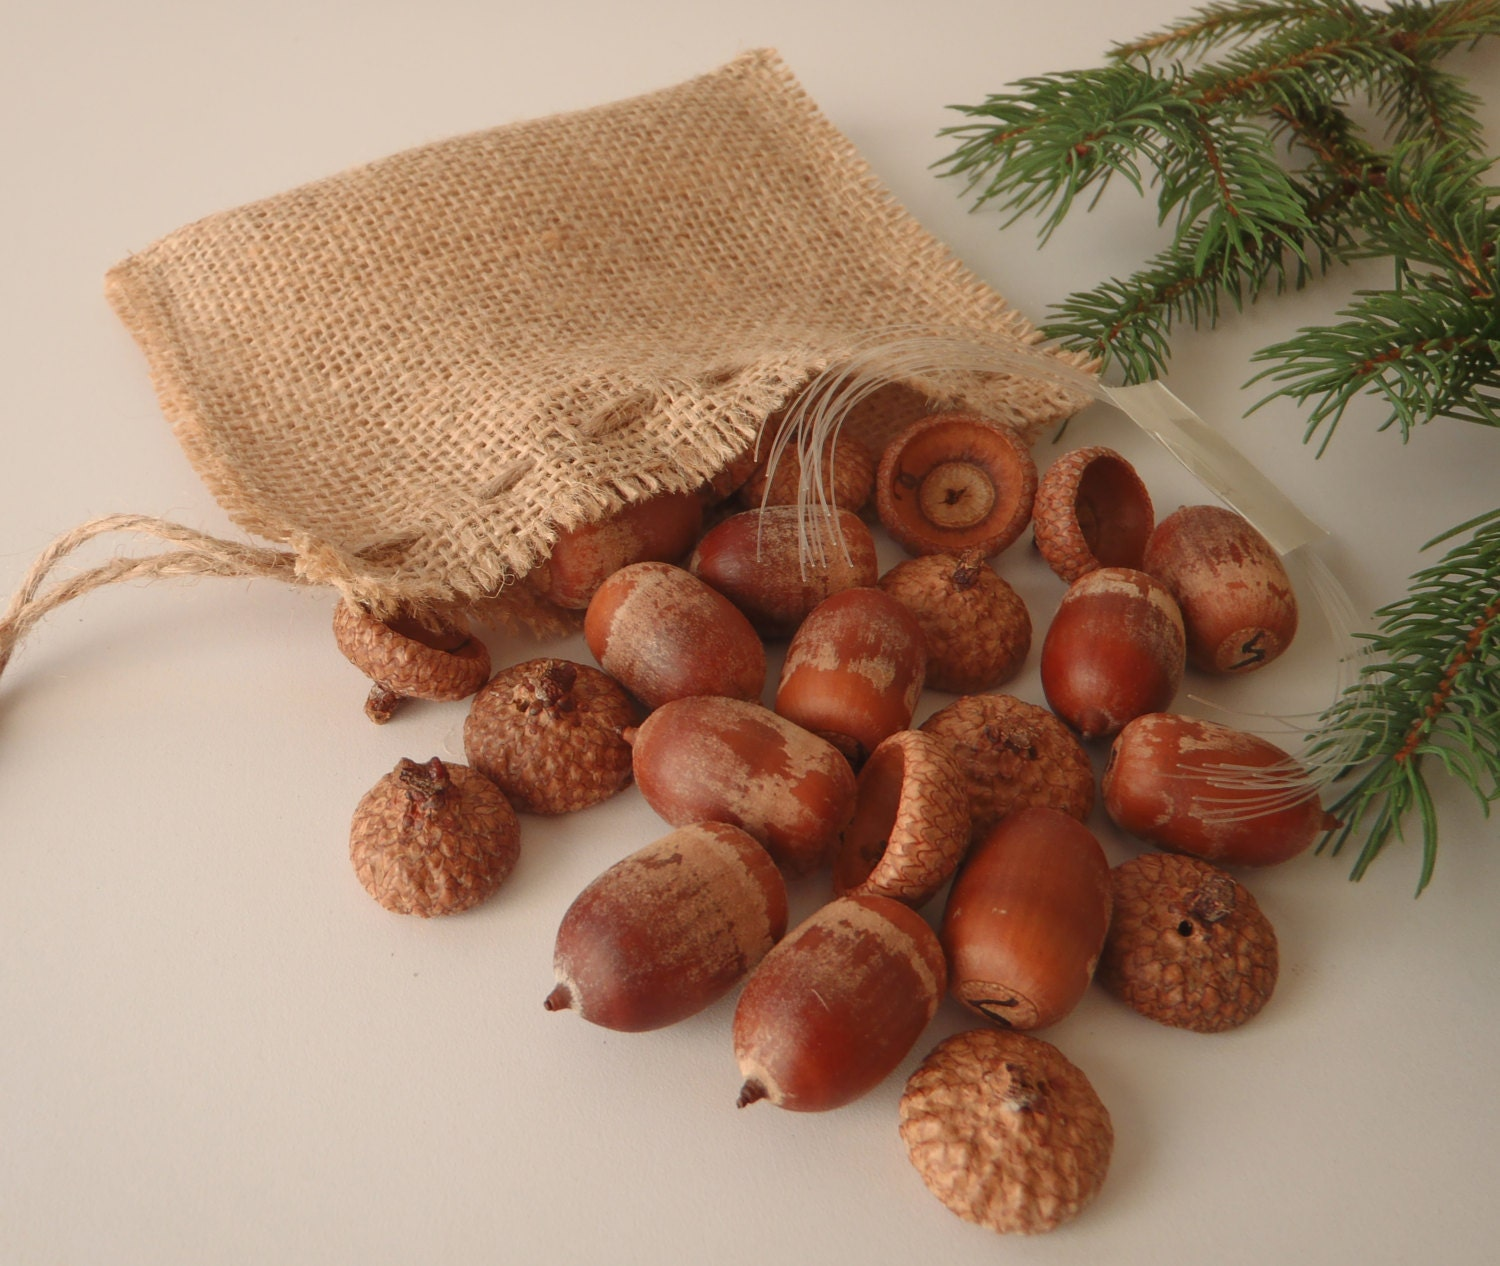 DIY Acorn Ornament Decoration Kit Set of 12 Make Your Own Glittered Acorns / Acorn Supply by FeistyFarmersWife - FeistyFarmersWife